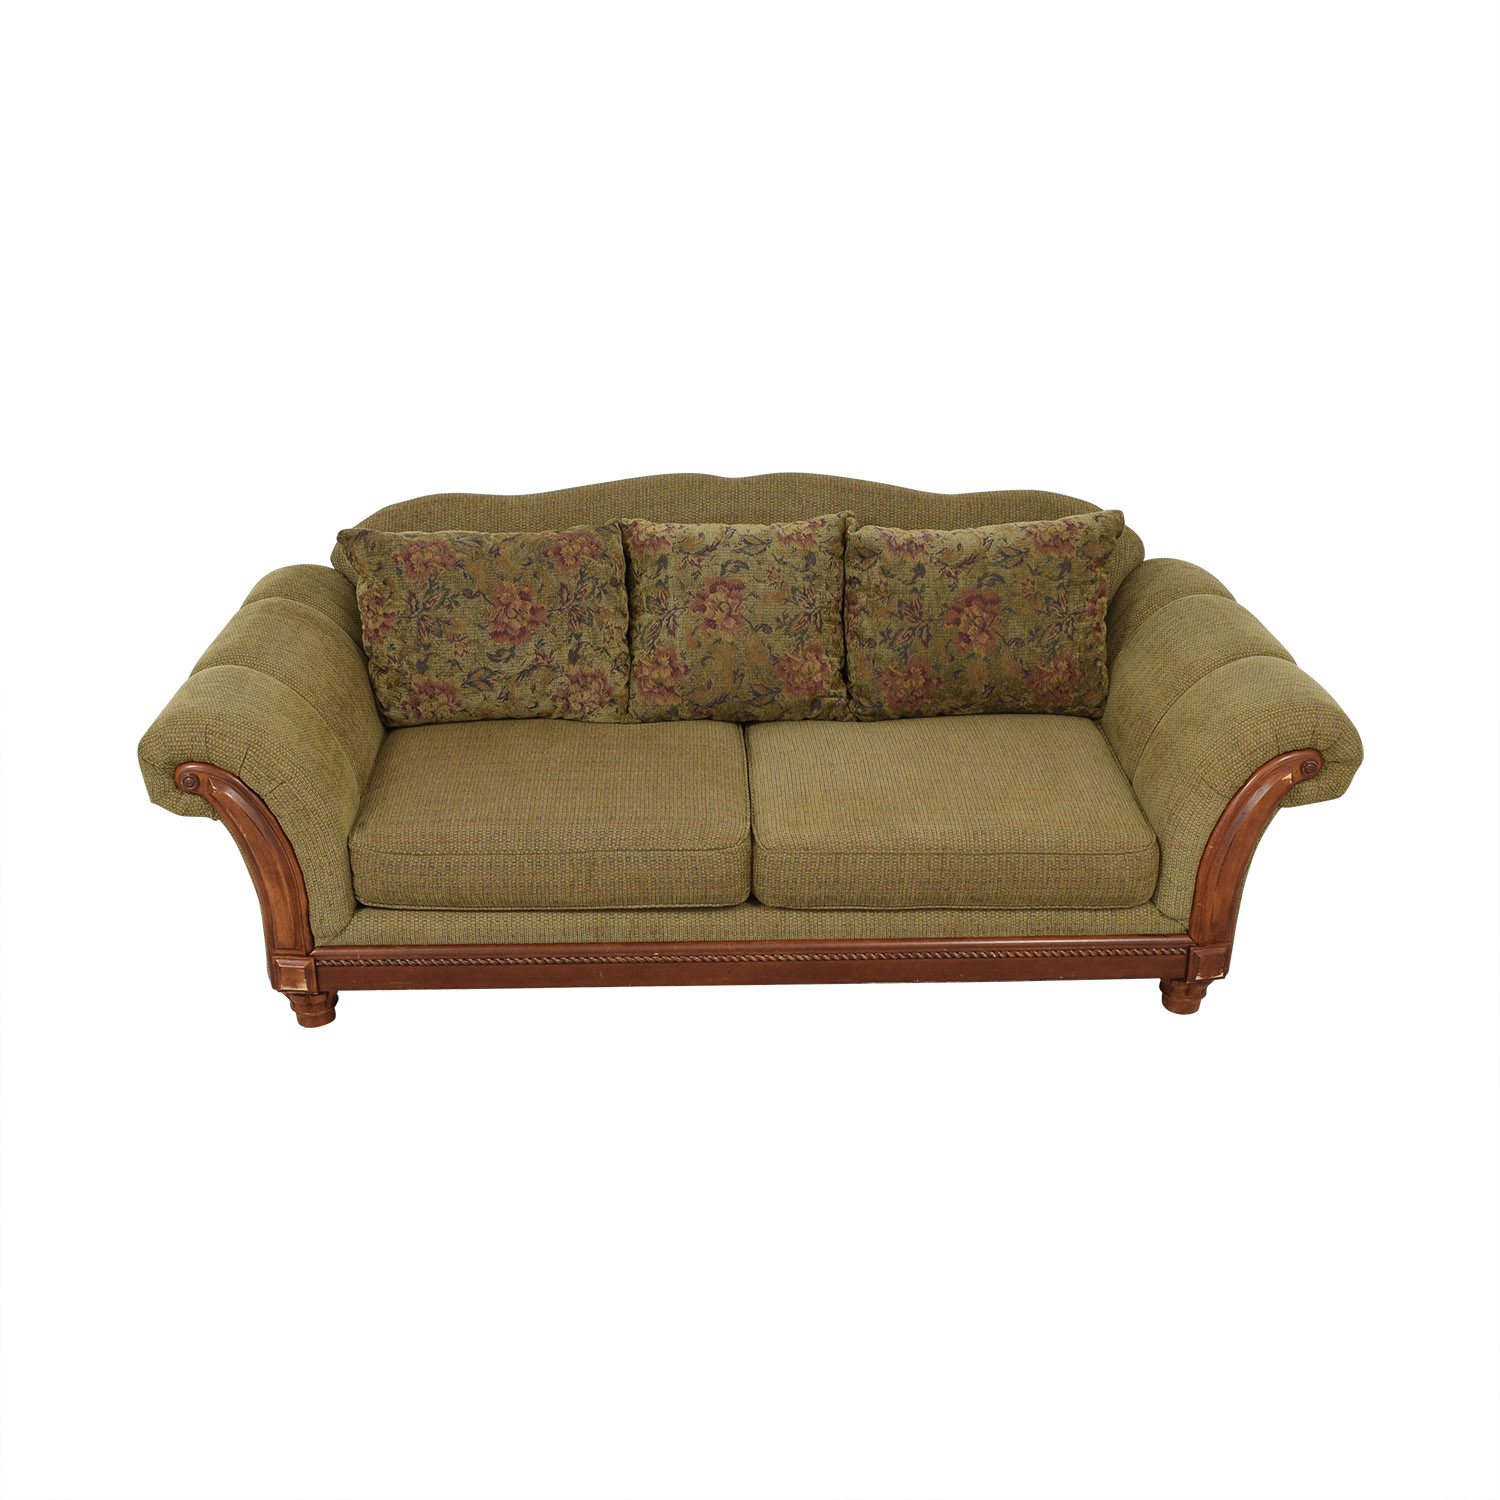 Klaussner Upholstered Sofa / Classic Sofas